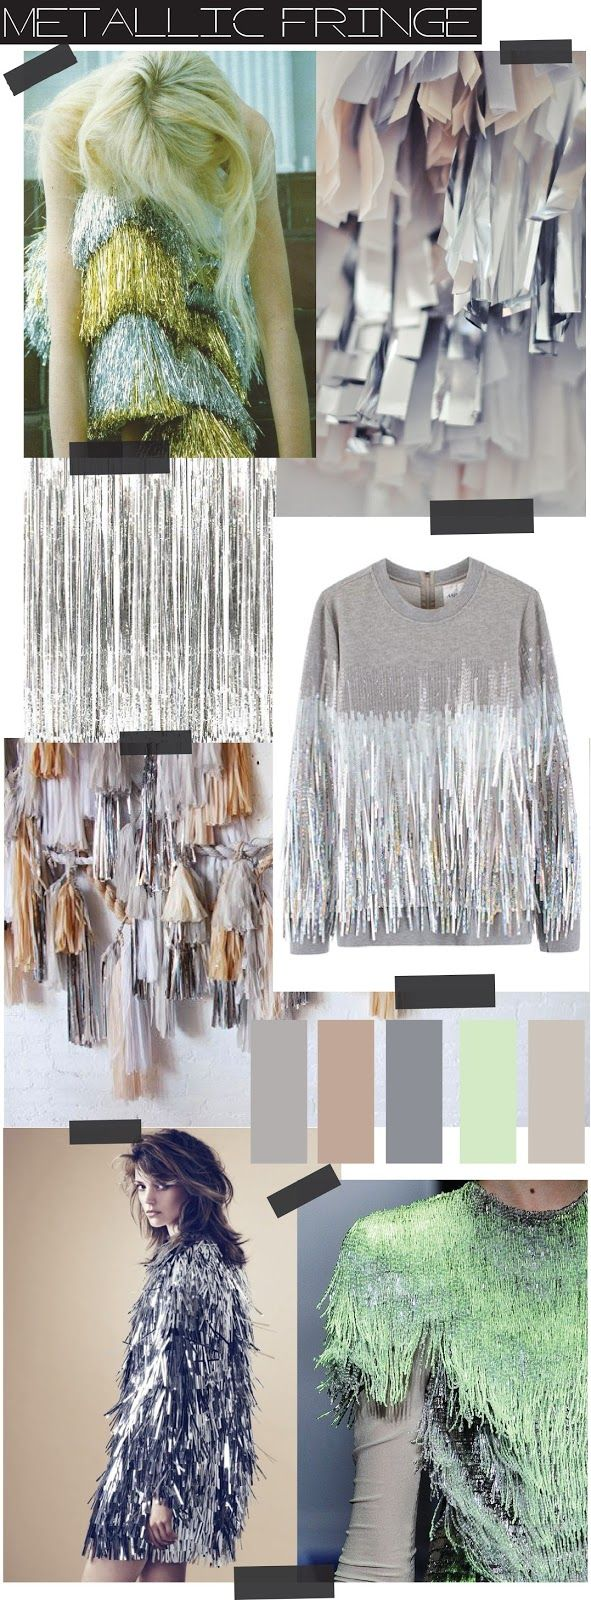 Sources of inspirationsMeadham Kirchhoff pants - Foudre | Fringe Tassle Garland - Camille...